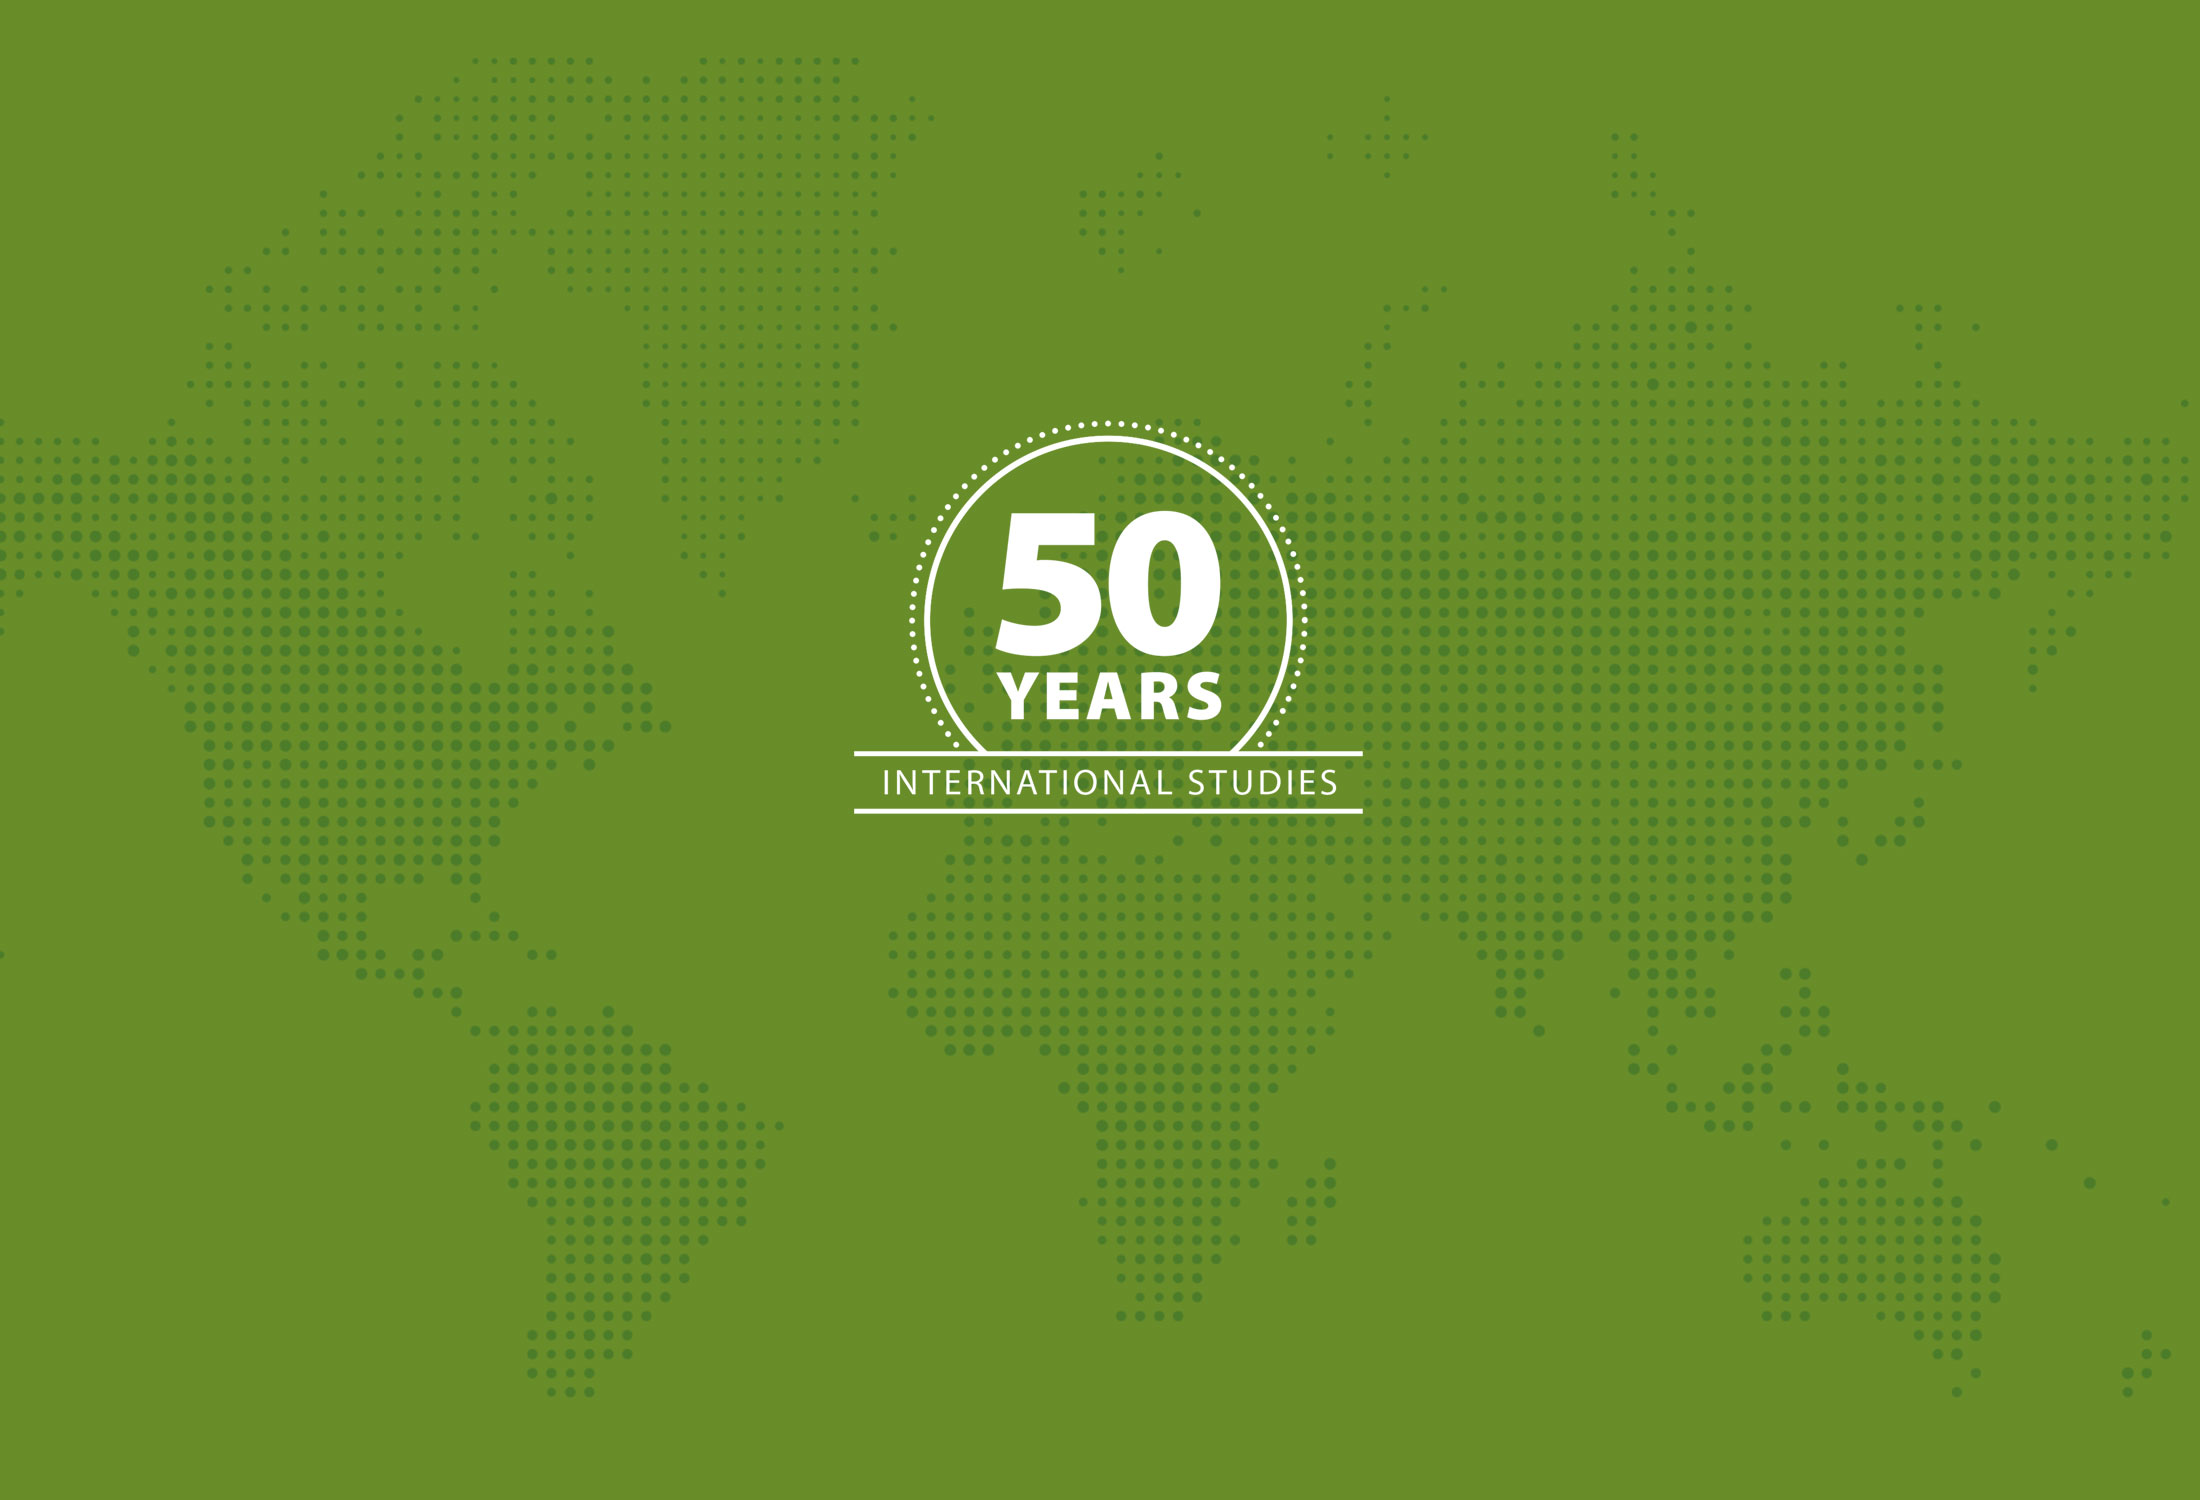 International Studies @ 50